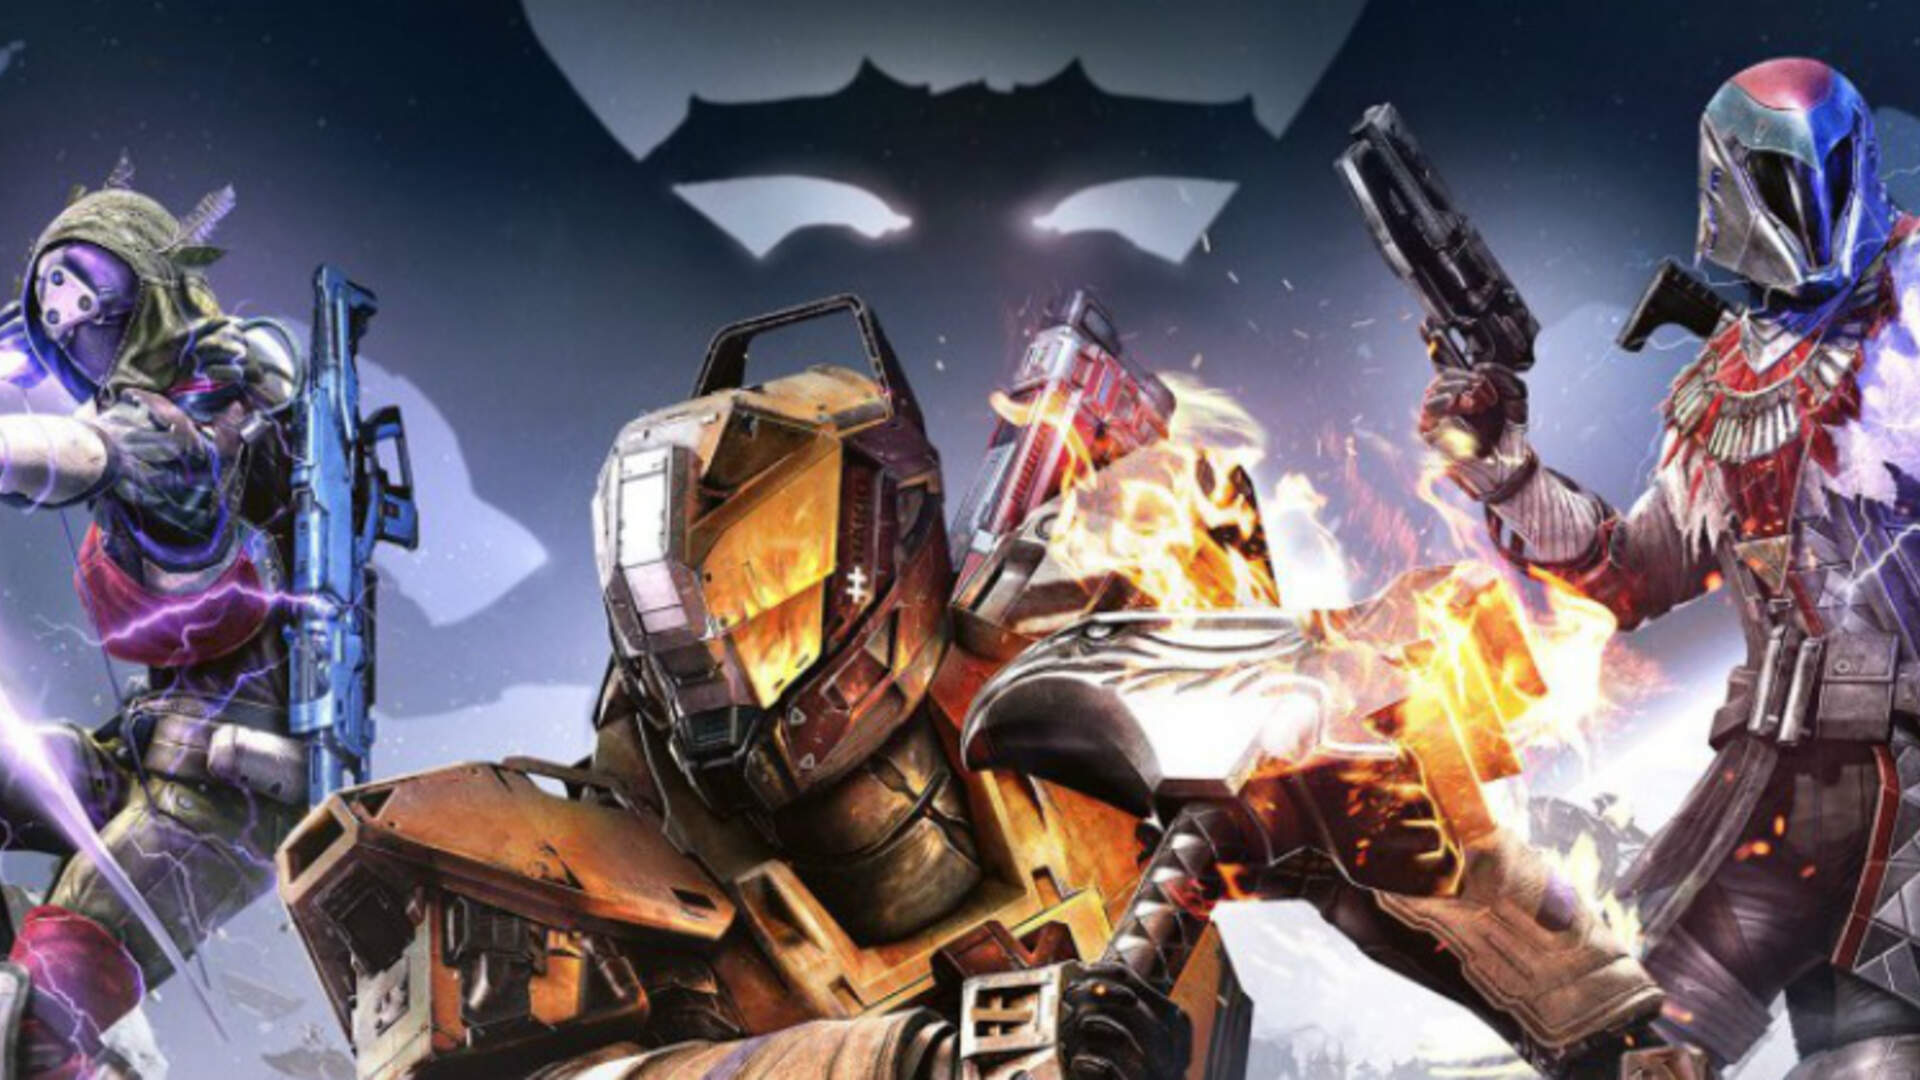 Destiny Gets Overhauled With The Taken King